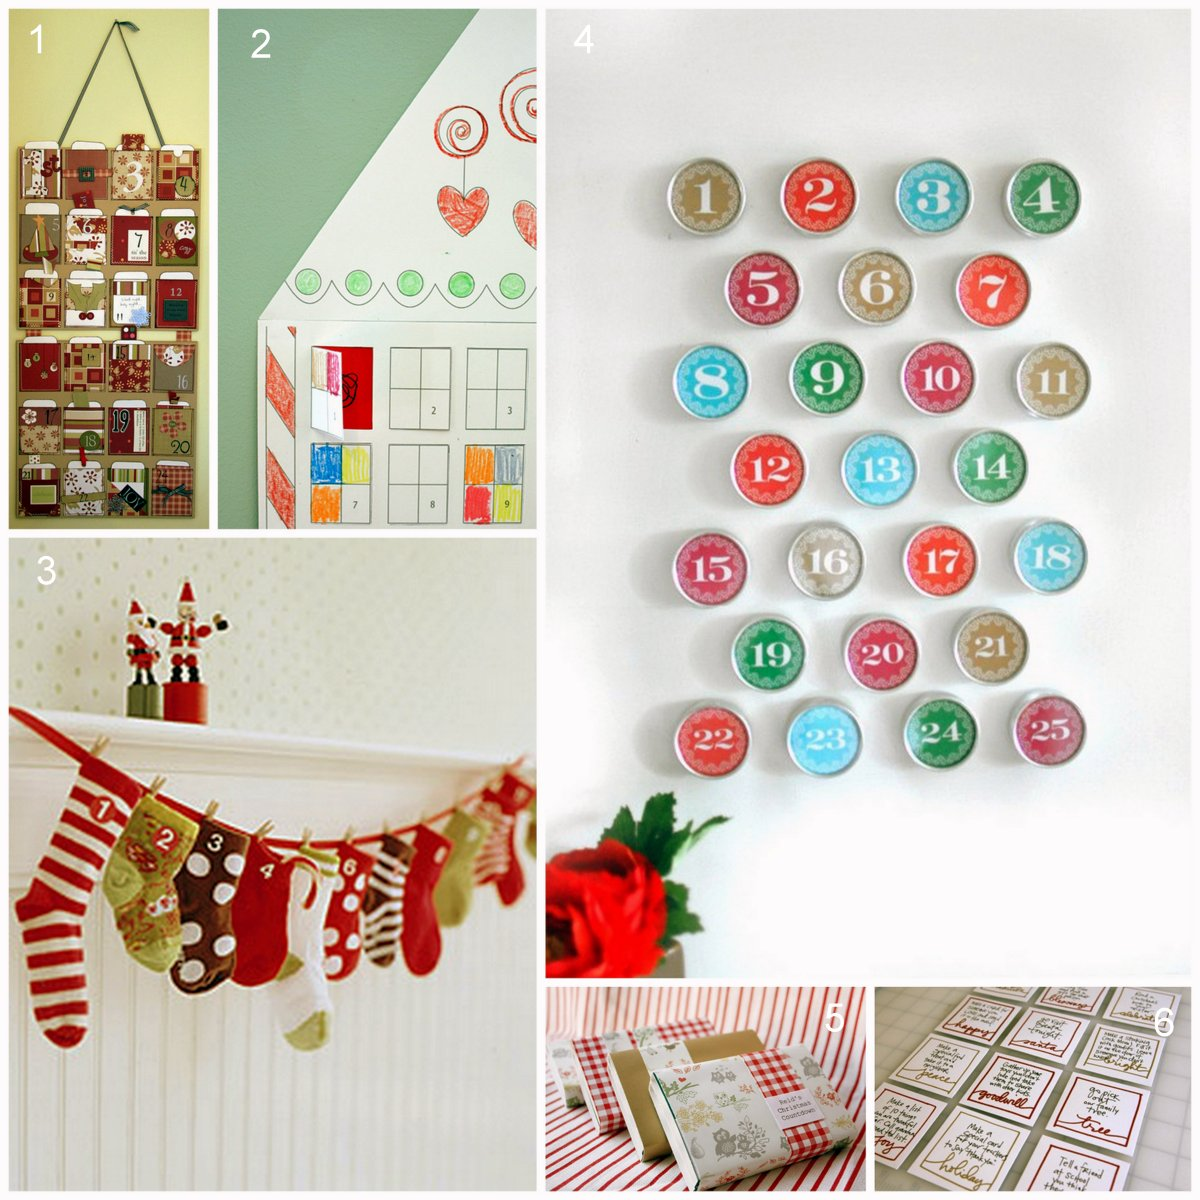 Creativity unmasked six for saturday or sunday for Diy christmas advent calendar ideas